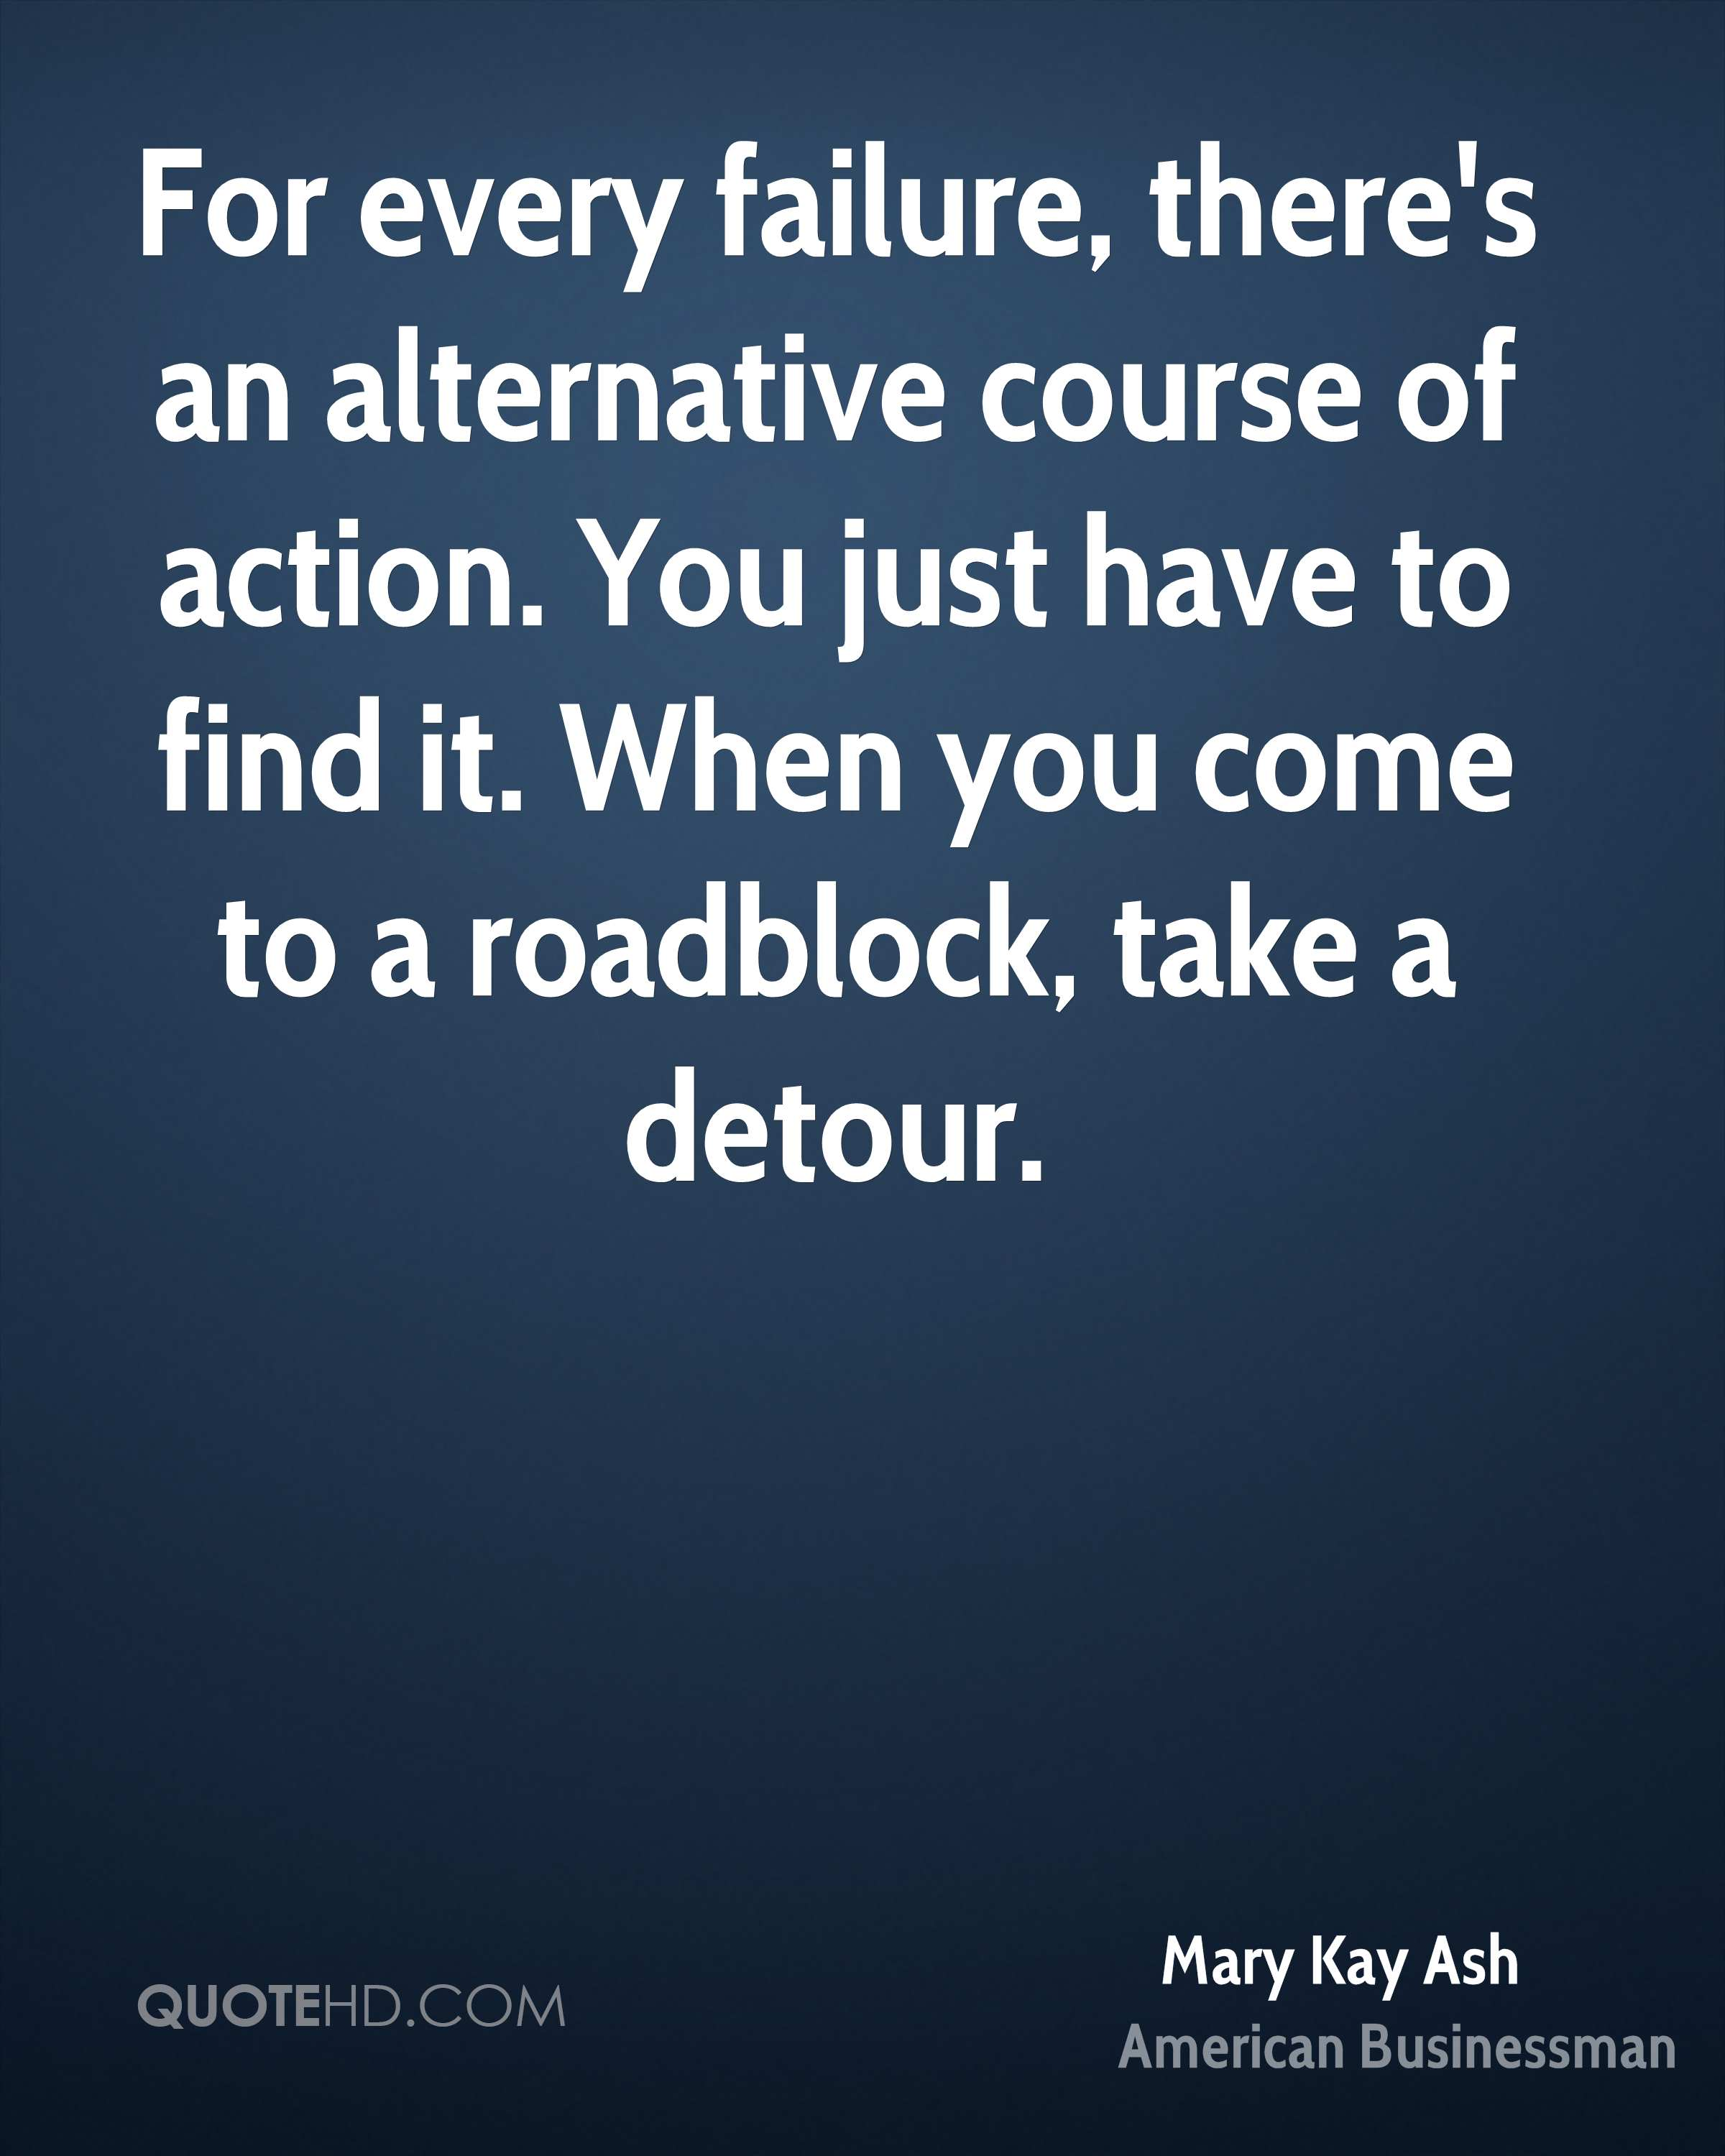 For every failure, there's an alternative course of action. You just have to find it. When you come to a roadblock, take a detour.